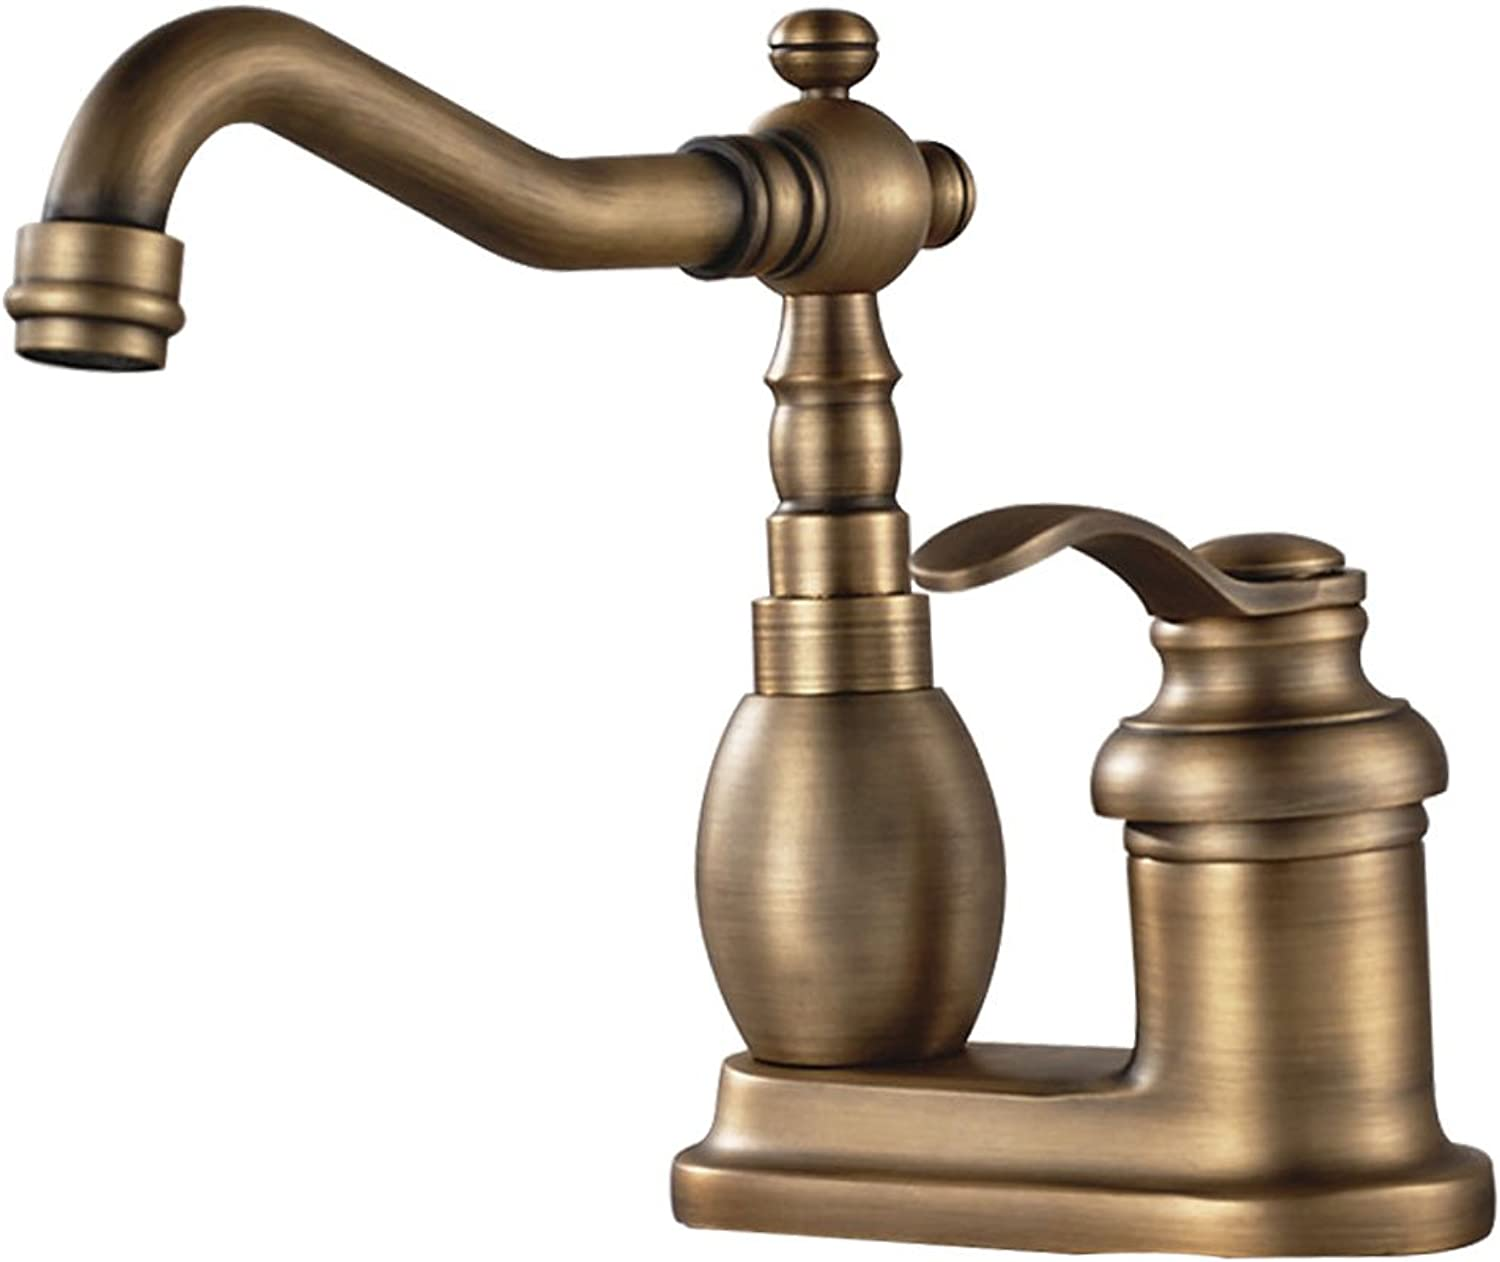 Lingyun Faucet- Brass Faucet,Retro Styling,single Handle Faucet,Wire Drawing Technology,Ceramic Valve Core,Hot And Cold Water Dual Control,Bathroom Kitchen Faucet